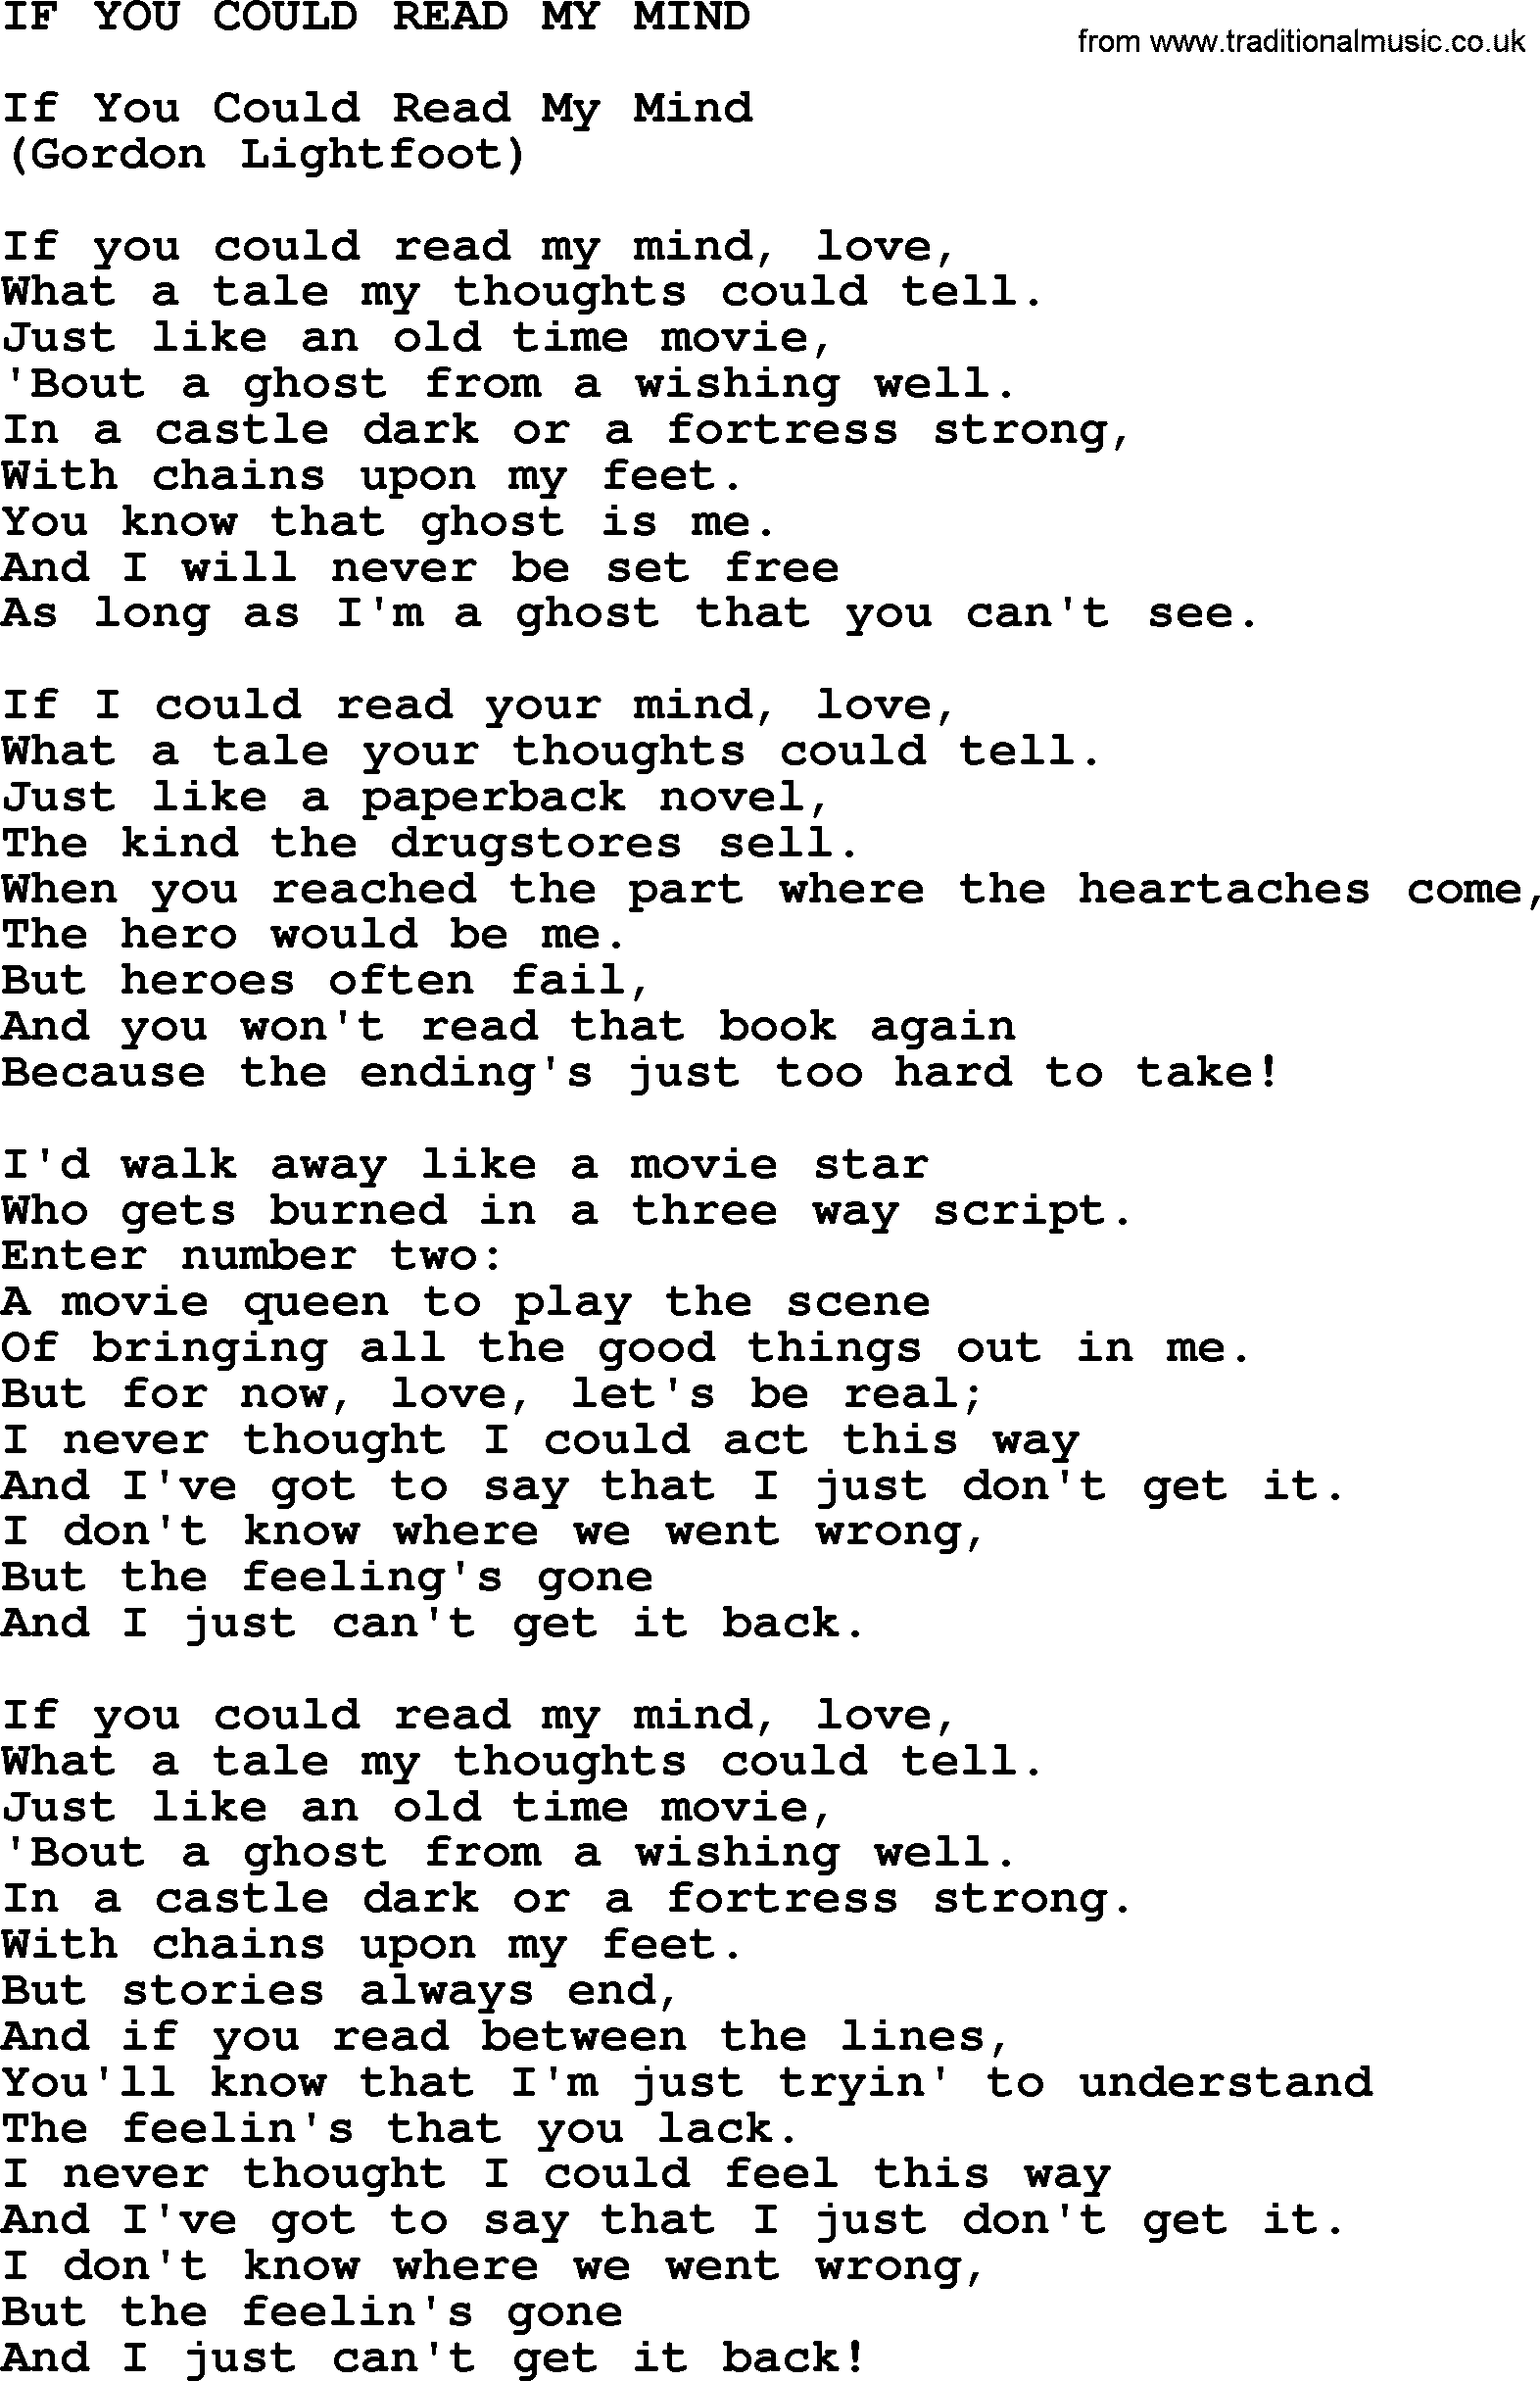 Gordon Lightfoot - If You Could Read My Mind (Chords)